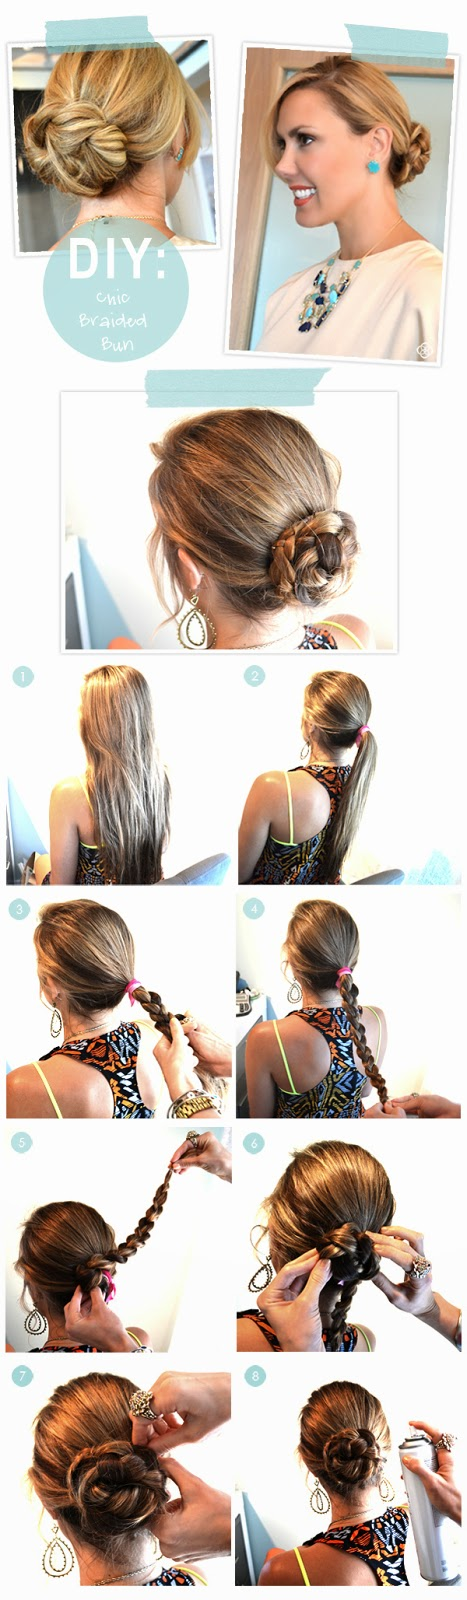 http://blog.kendrascott.com/2012/07/diy-chic-braided-bun/diy_chic_braided_bun_kendra_scott_designer_jewelry_2/